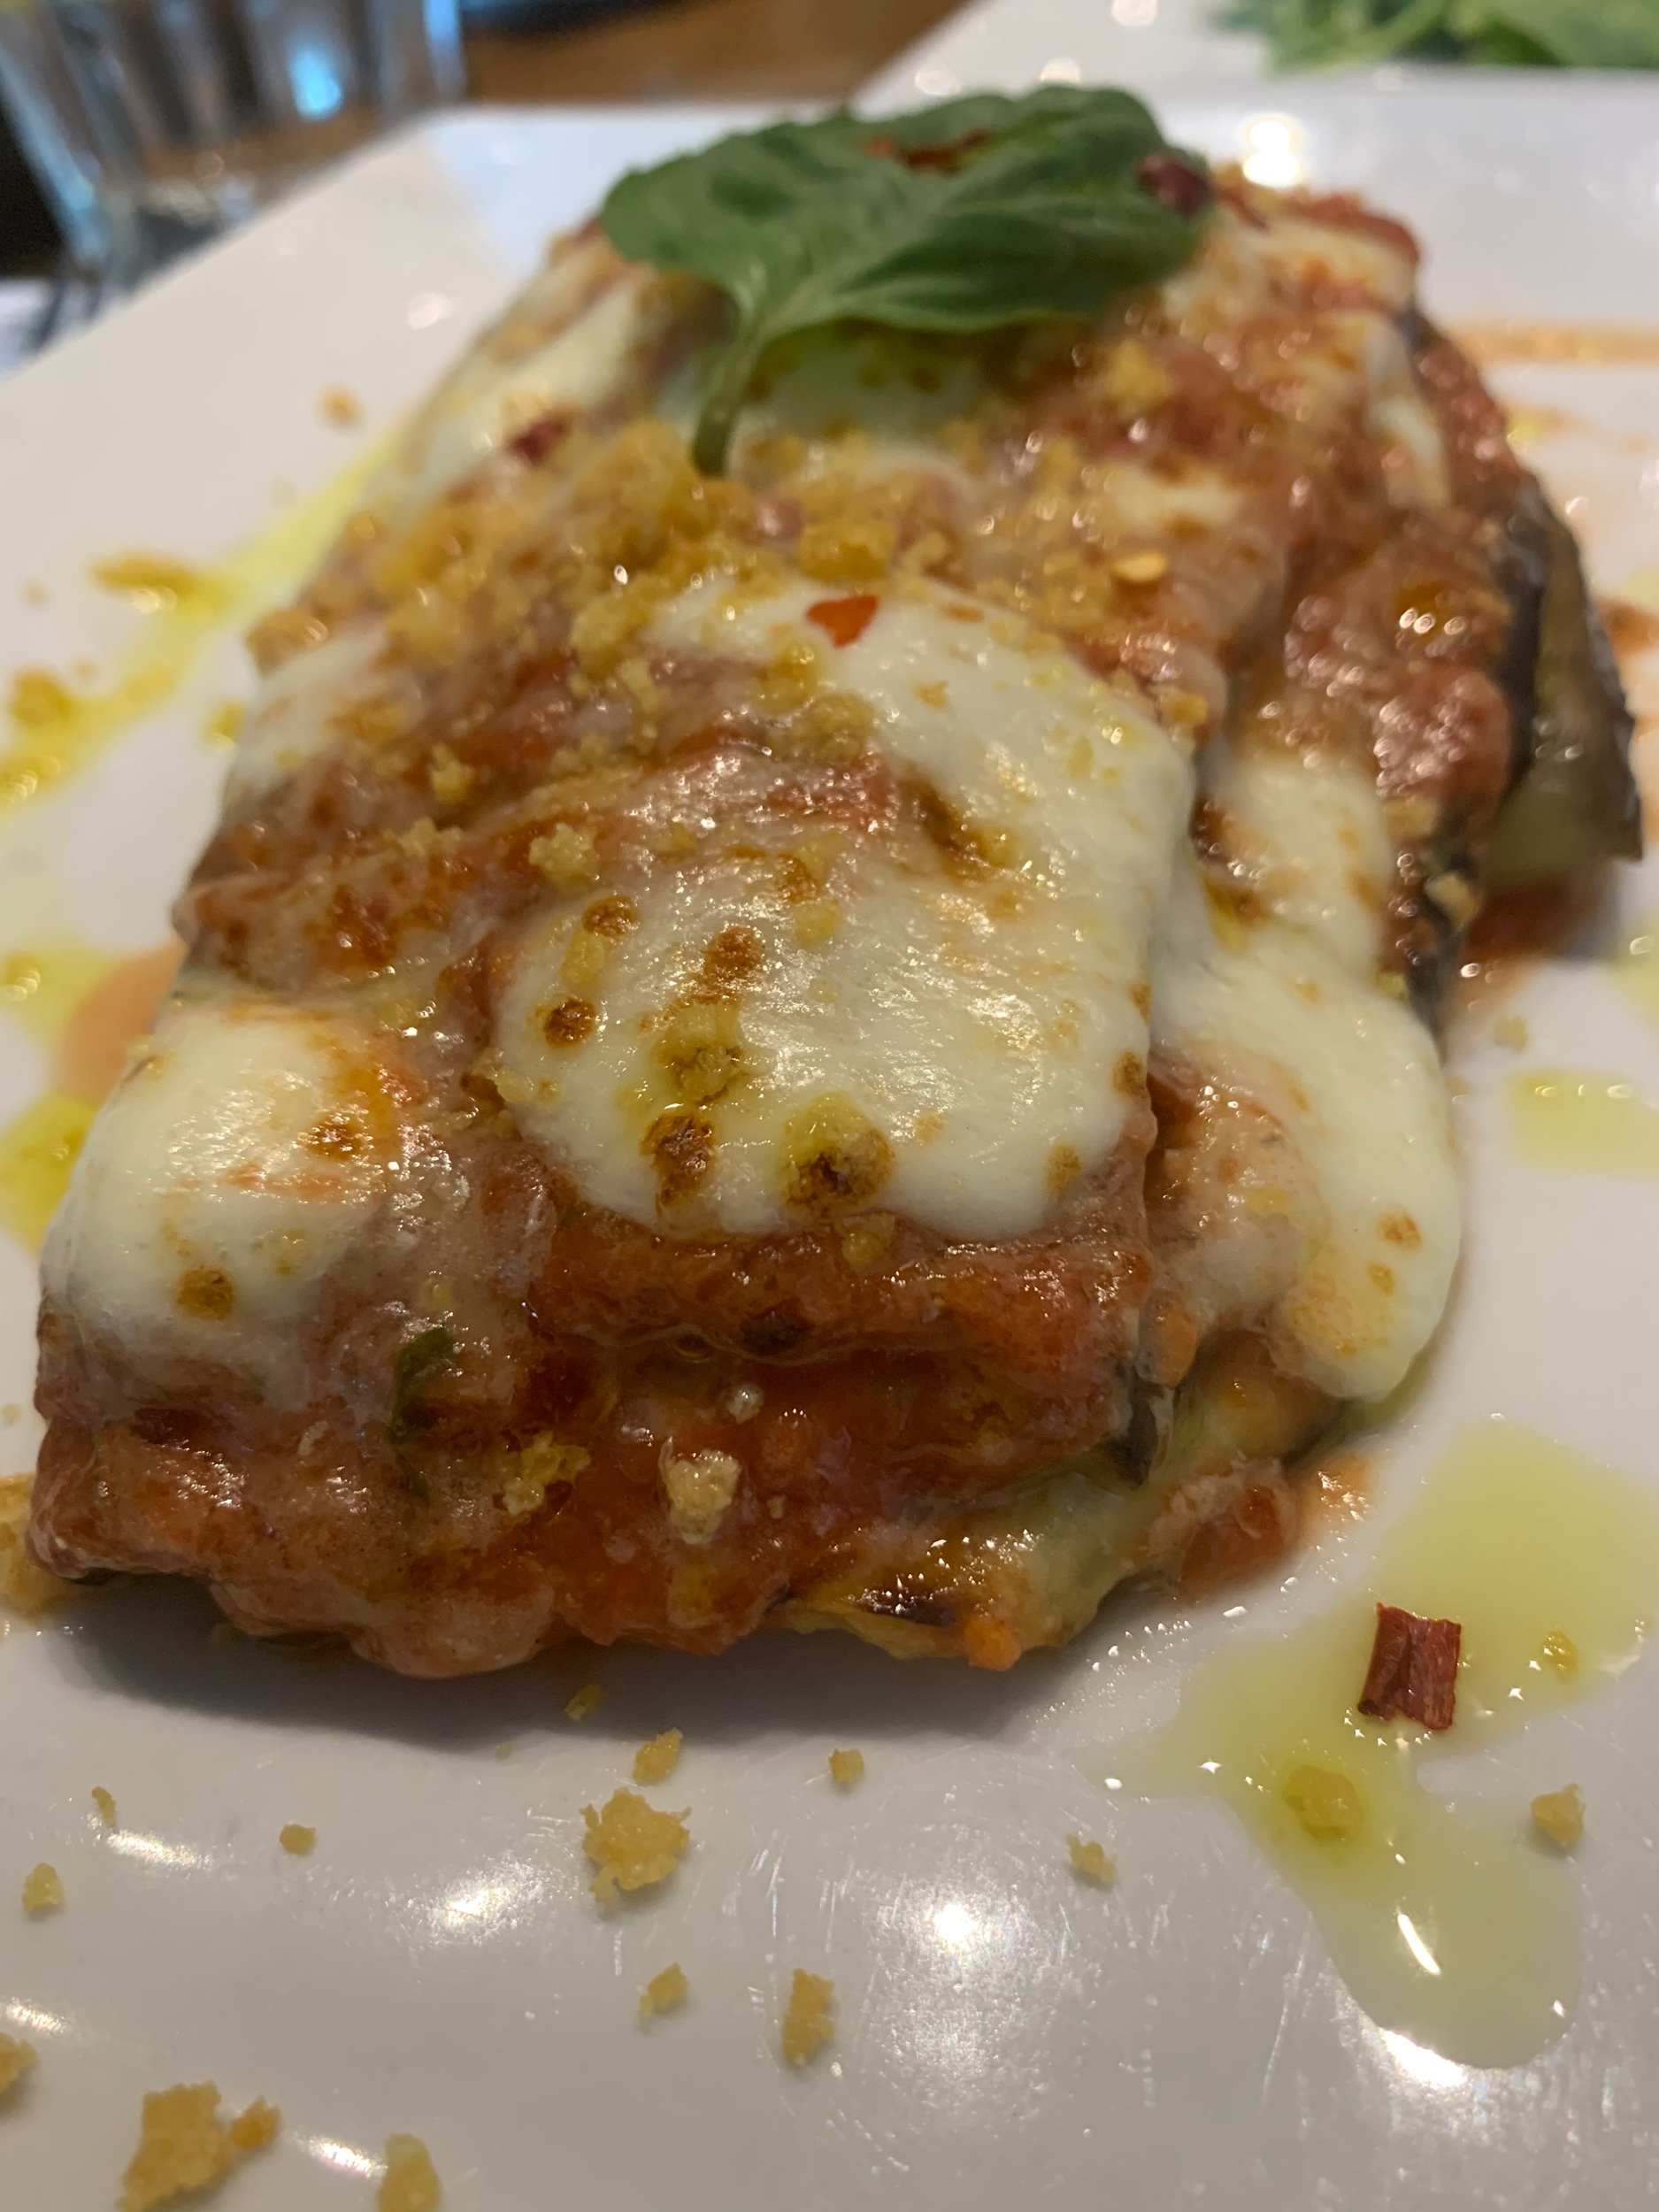 Eggplant parmigiana  Oven roasted eggplant, mozzarella cheese and tomato sauce with a touch of spice baked in our oven. *Gluten Free